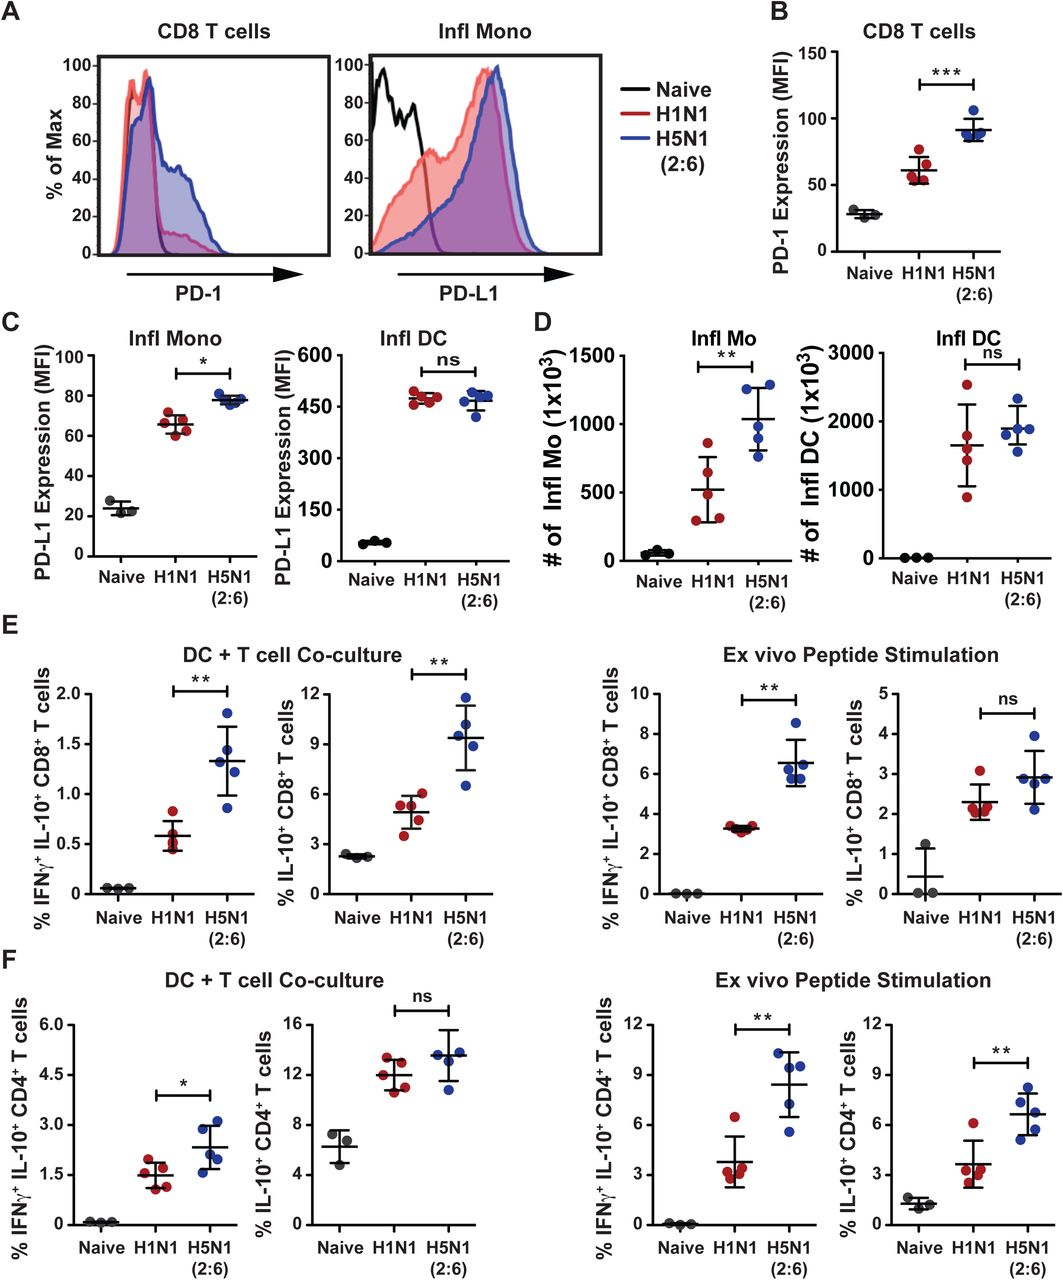 H5N1 (2:6) infection induces higher expression of PD-1 and IL-10 in cytotoxic T cells. C57BL/6 mice were infected with H5N1 (2:6) or H1N1 virus and on day 8pi, expression of PD-1 and production of IL-10 in CD8+ T cells were measured ex vivo upon co-culture with infected DC or peptide pulsed DC by flow cytometry. PD-L1 expression on inflammatory monocytes was also measured by flow cytometry. (A) Representative histograms showing expression of PD-1 on CD8+ T cells and PD-L1 on Ly6C + inflammatory monocytes. (B) quantification for PD-1 expression in CD8 T cells as MFI. (C) Quantification of PD-L1 expression in inflammatory monocytes and inflammatory DCs. (D) Absolute numbers of inflammatory monocytes and inflammatory DCs. (E) Quantification of IL-10 producing CD8+ T cell frequencies in X-31 infected DC-T cell co-culture (upper panel) and NP peptide pulsed DC-T cell co-culture (lower panel). (E) Cytokine production in CD4+ T cells. Frequencies of IFNγ and IL-10 or IL-10 alone producing CD4+ T cells in X-31 infected DC-T cell co-culture (left panels) and NP peptide pulsed DC-T cell co-culture (right panels). The values are expressed as mean ± SD. *, **, *** denotes significance of